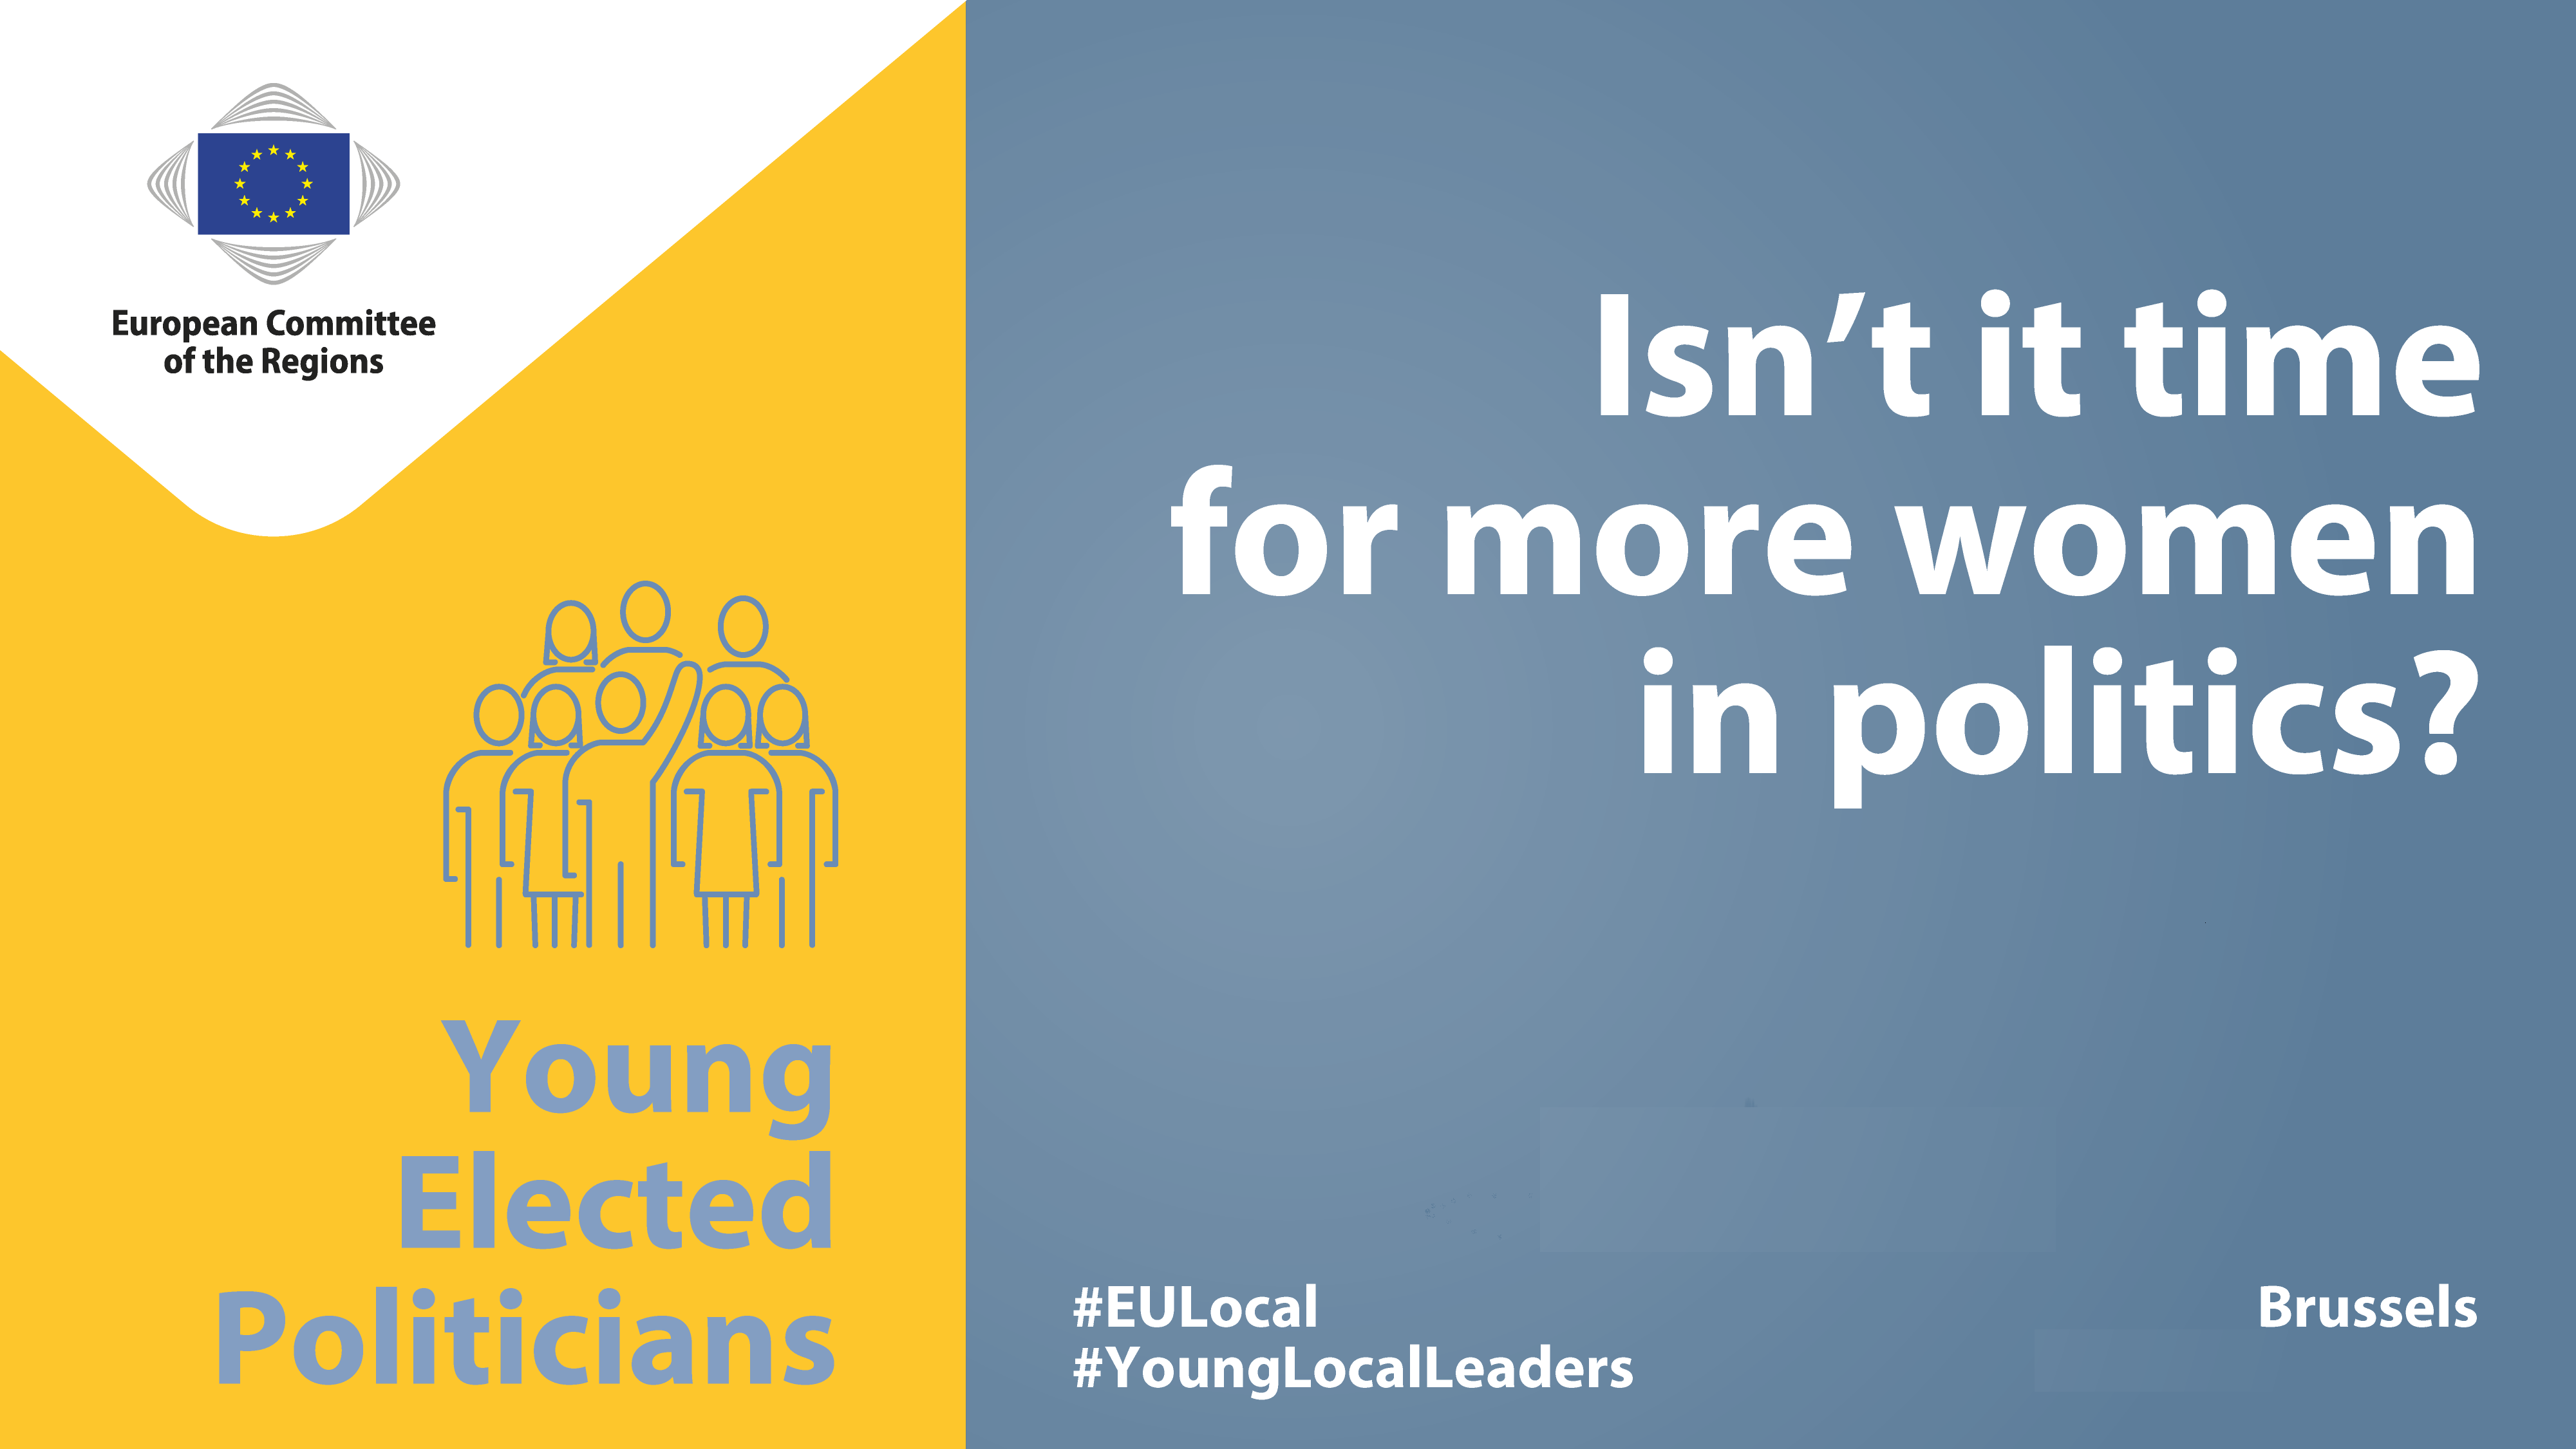 Young elected politicians – How is your region or city dealing with gender equality in policy making?